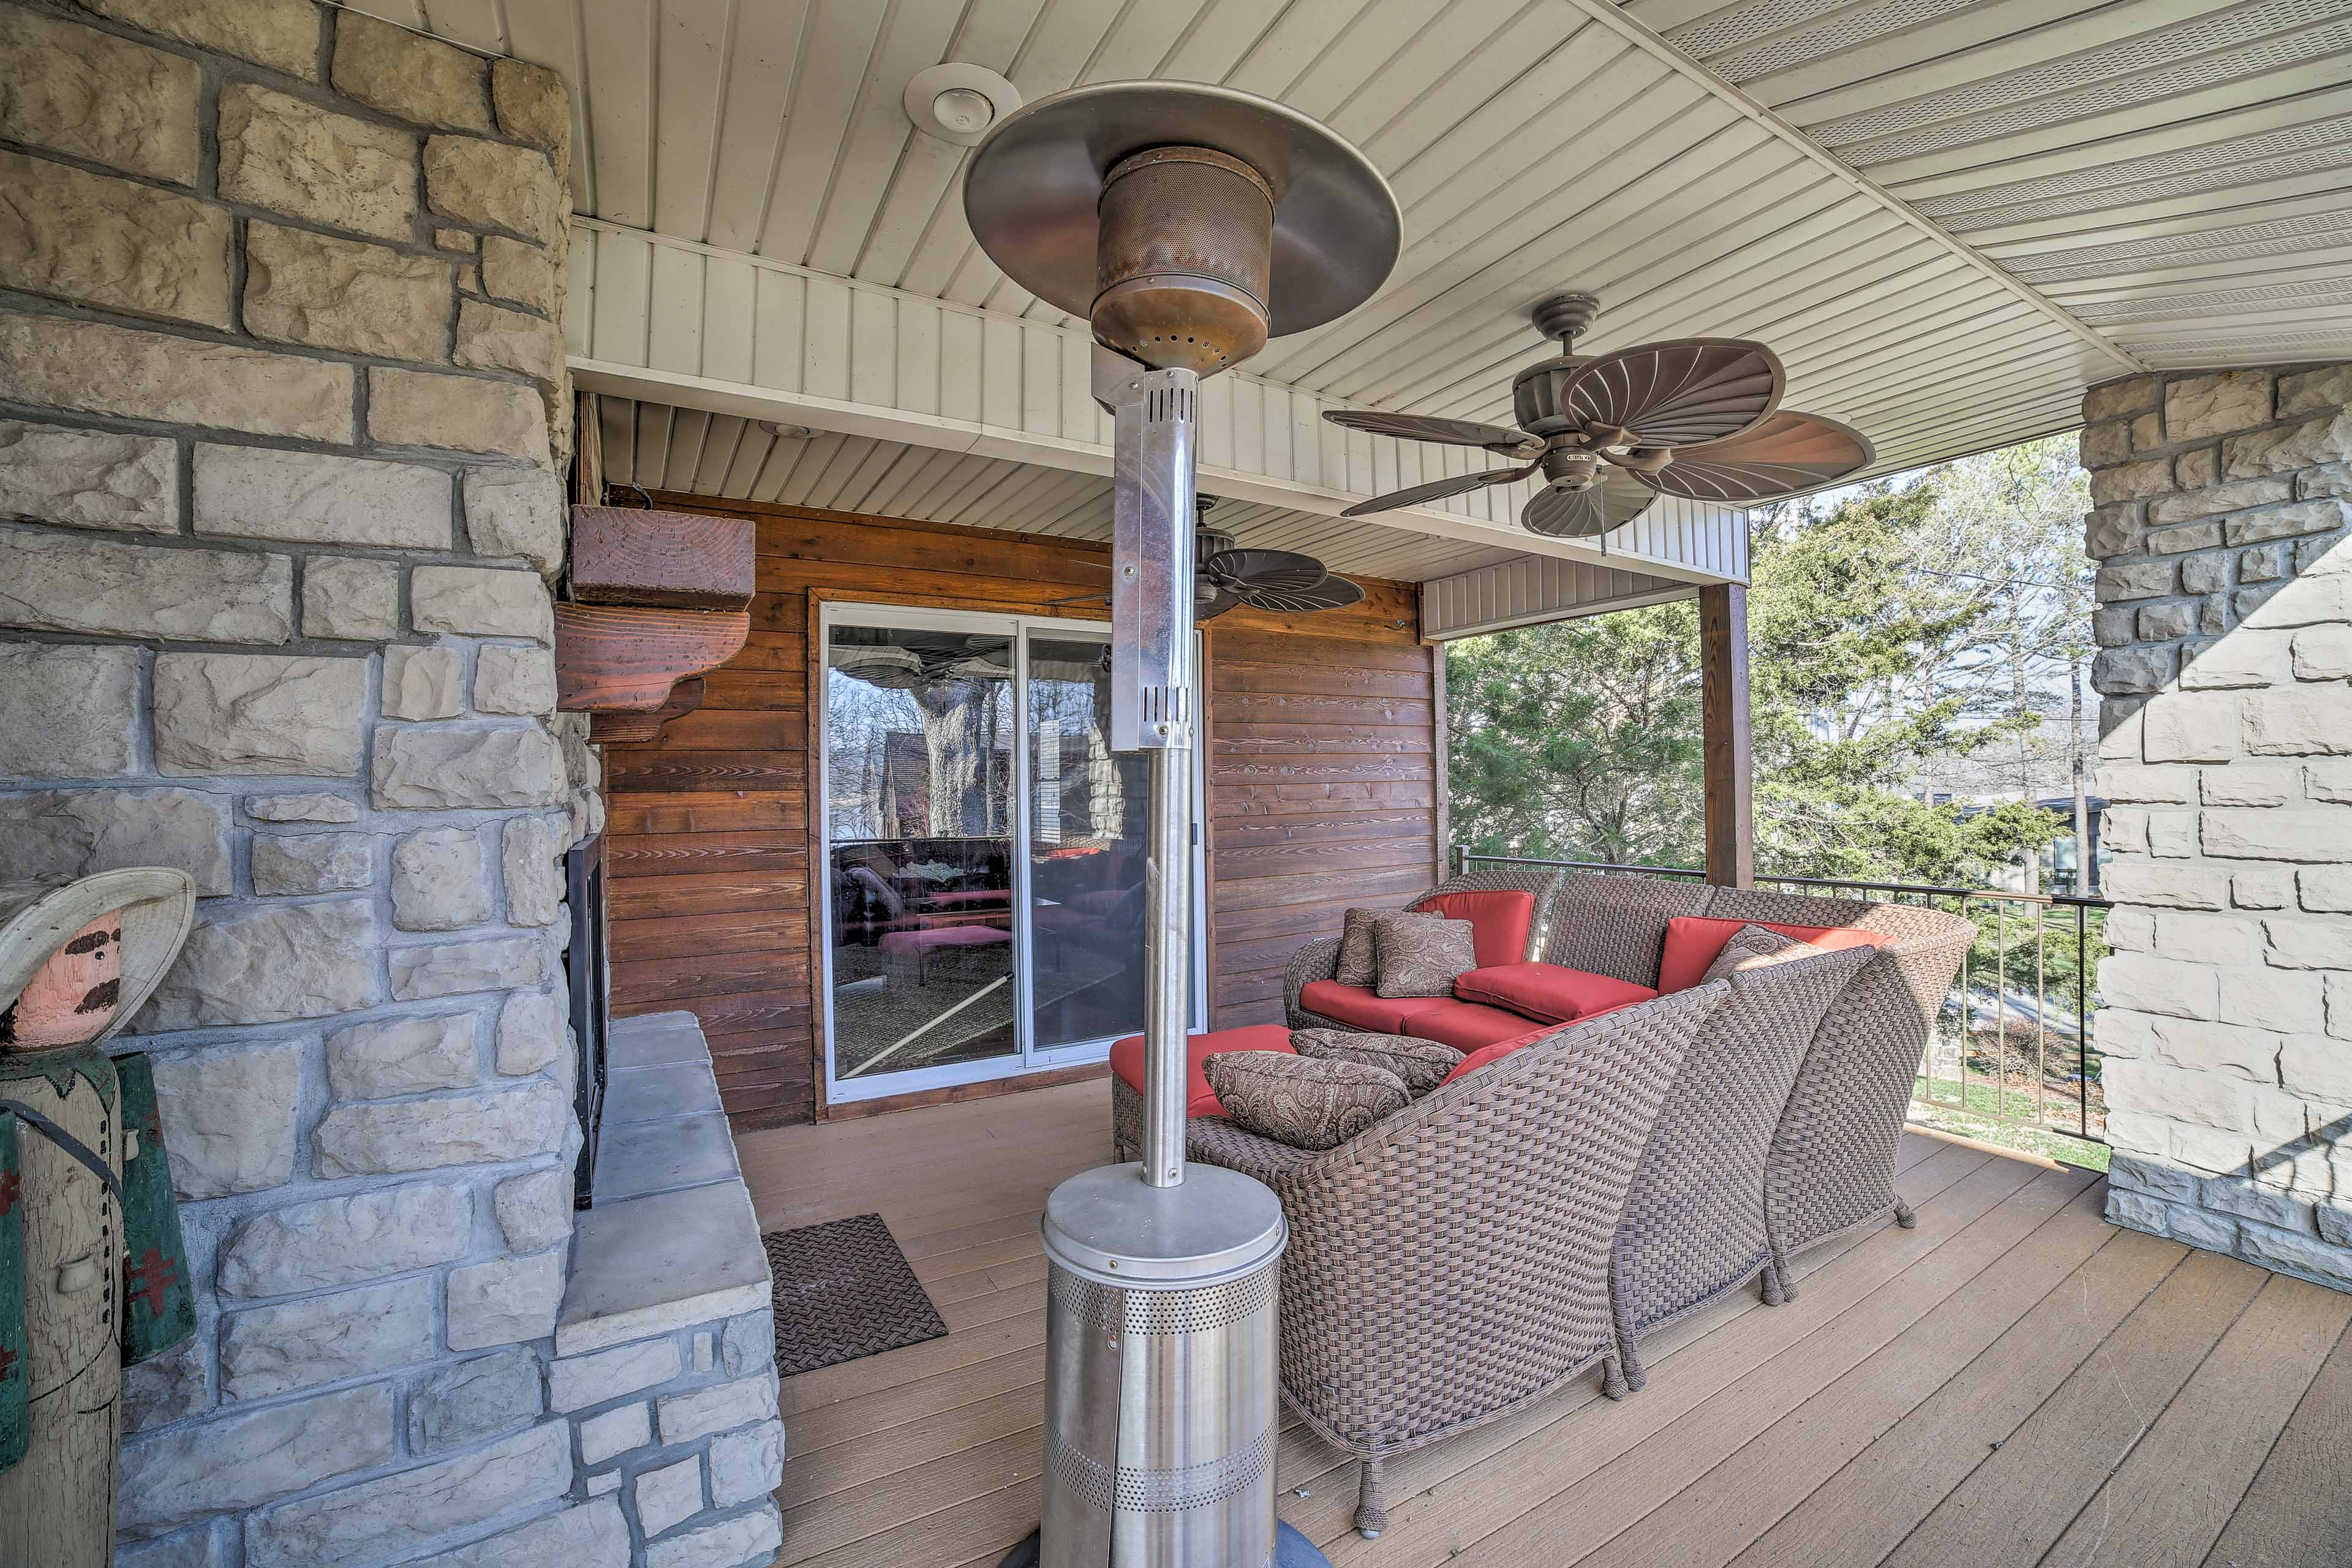 Enjoy the deck year-round with heaters framing the outdoor patio couches.